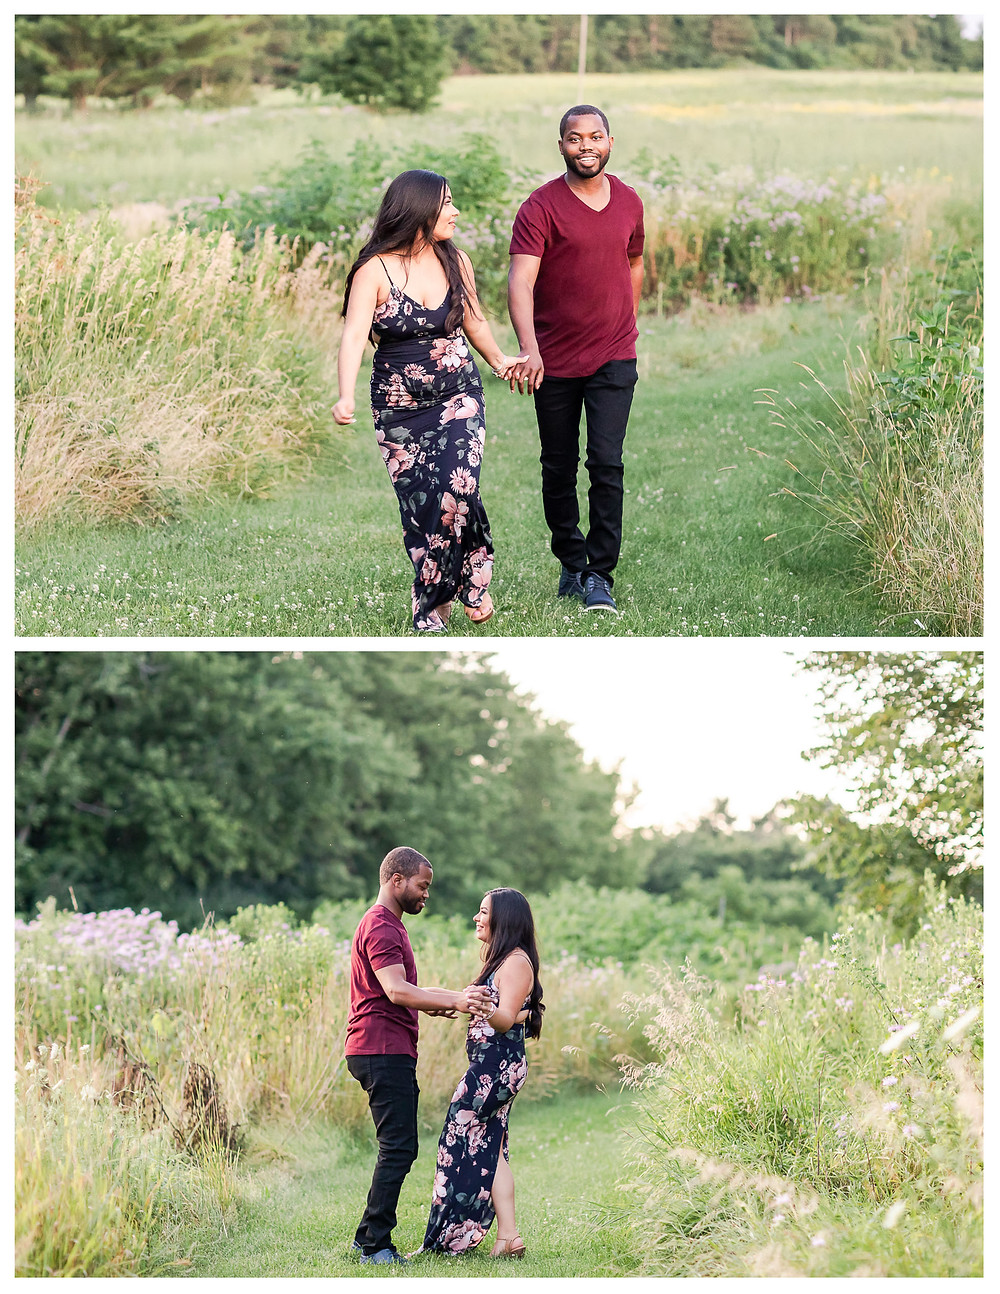 ENGAGEMENT SESSION LEROY OAKES FOREST PRESERVE ST CHARLES IL ENGAGED ENGAGEMENT RING RED BARN WILD FLOWERS BIKE TRAILS NATURE PHARMACY SCHOOL